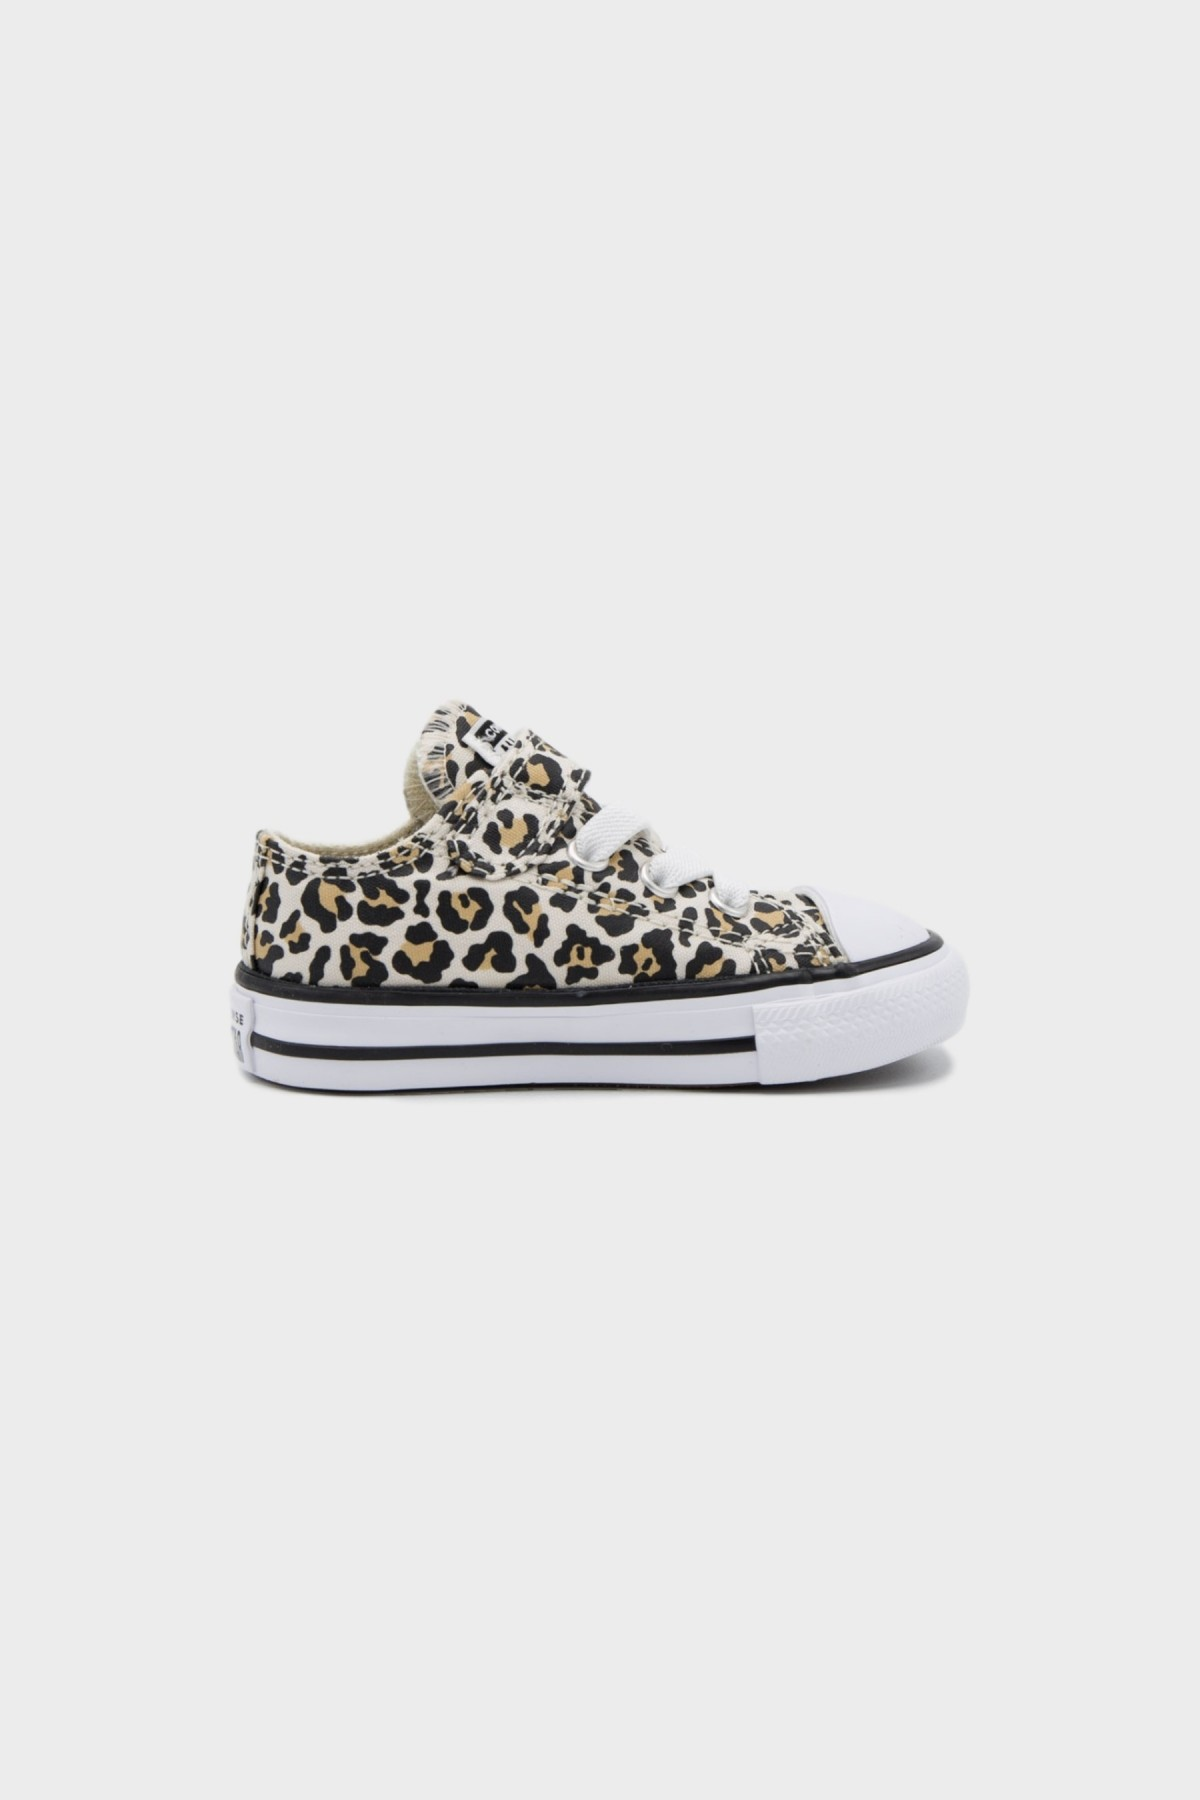 Converse All Stars OX Infant in Black Driftwood